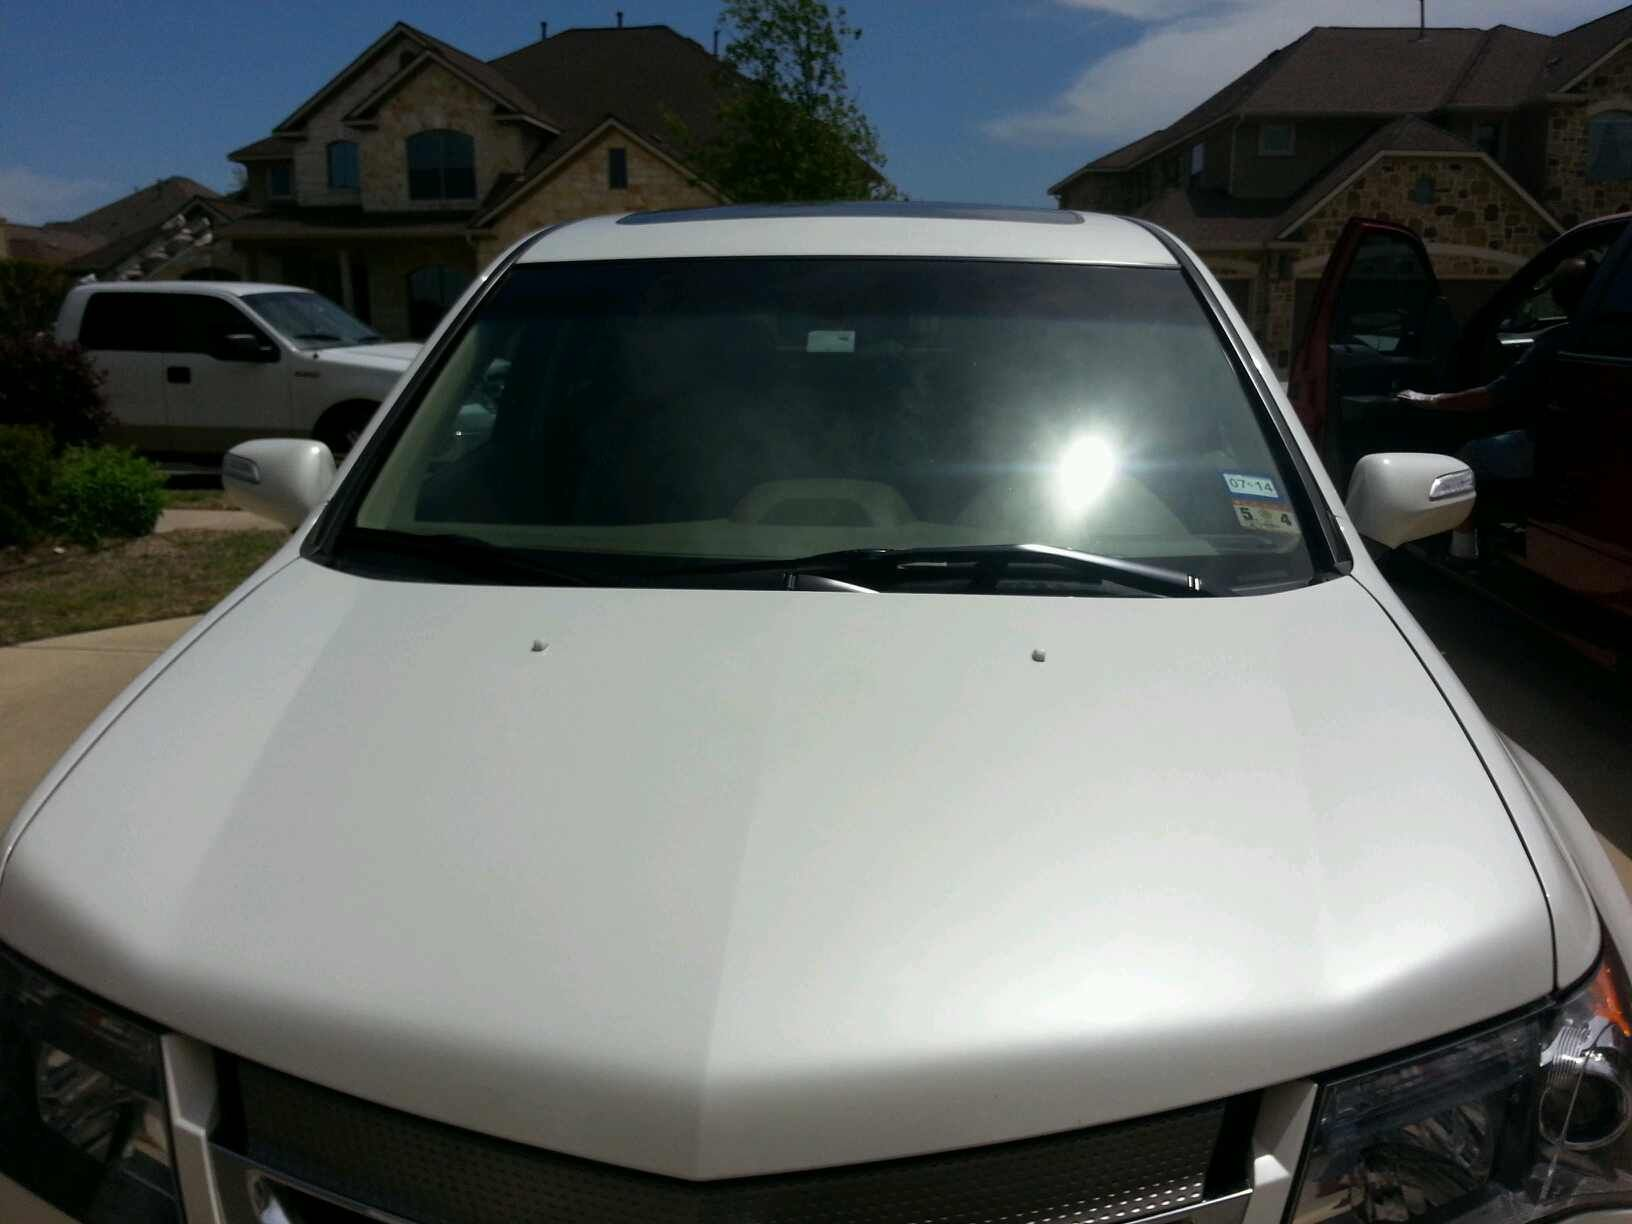 MDX Windshield Replacement Prices Local Auto Glass Quotes - Acura windshield replacement